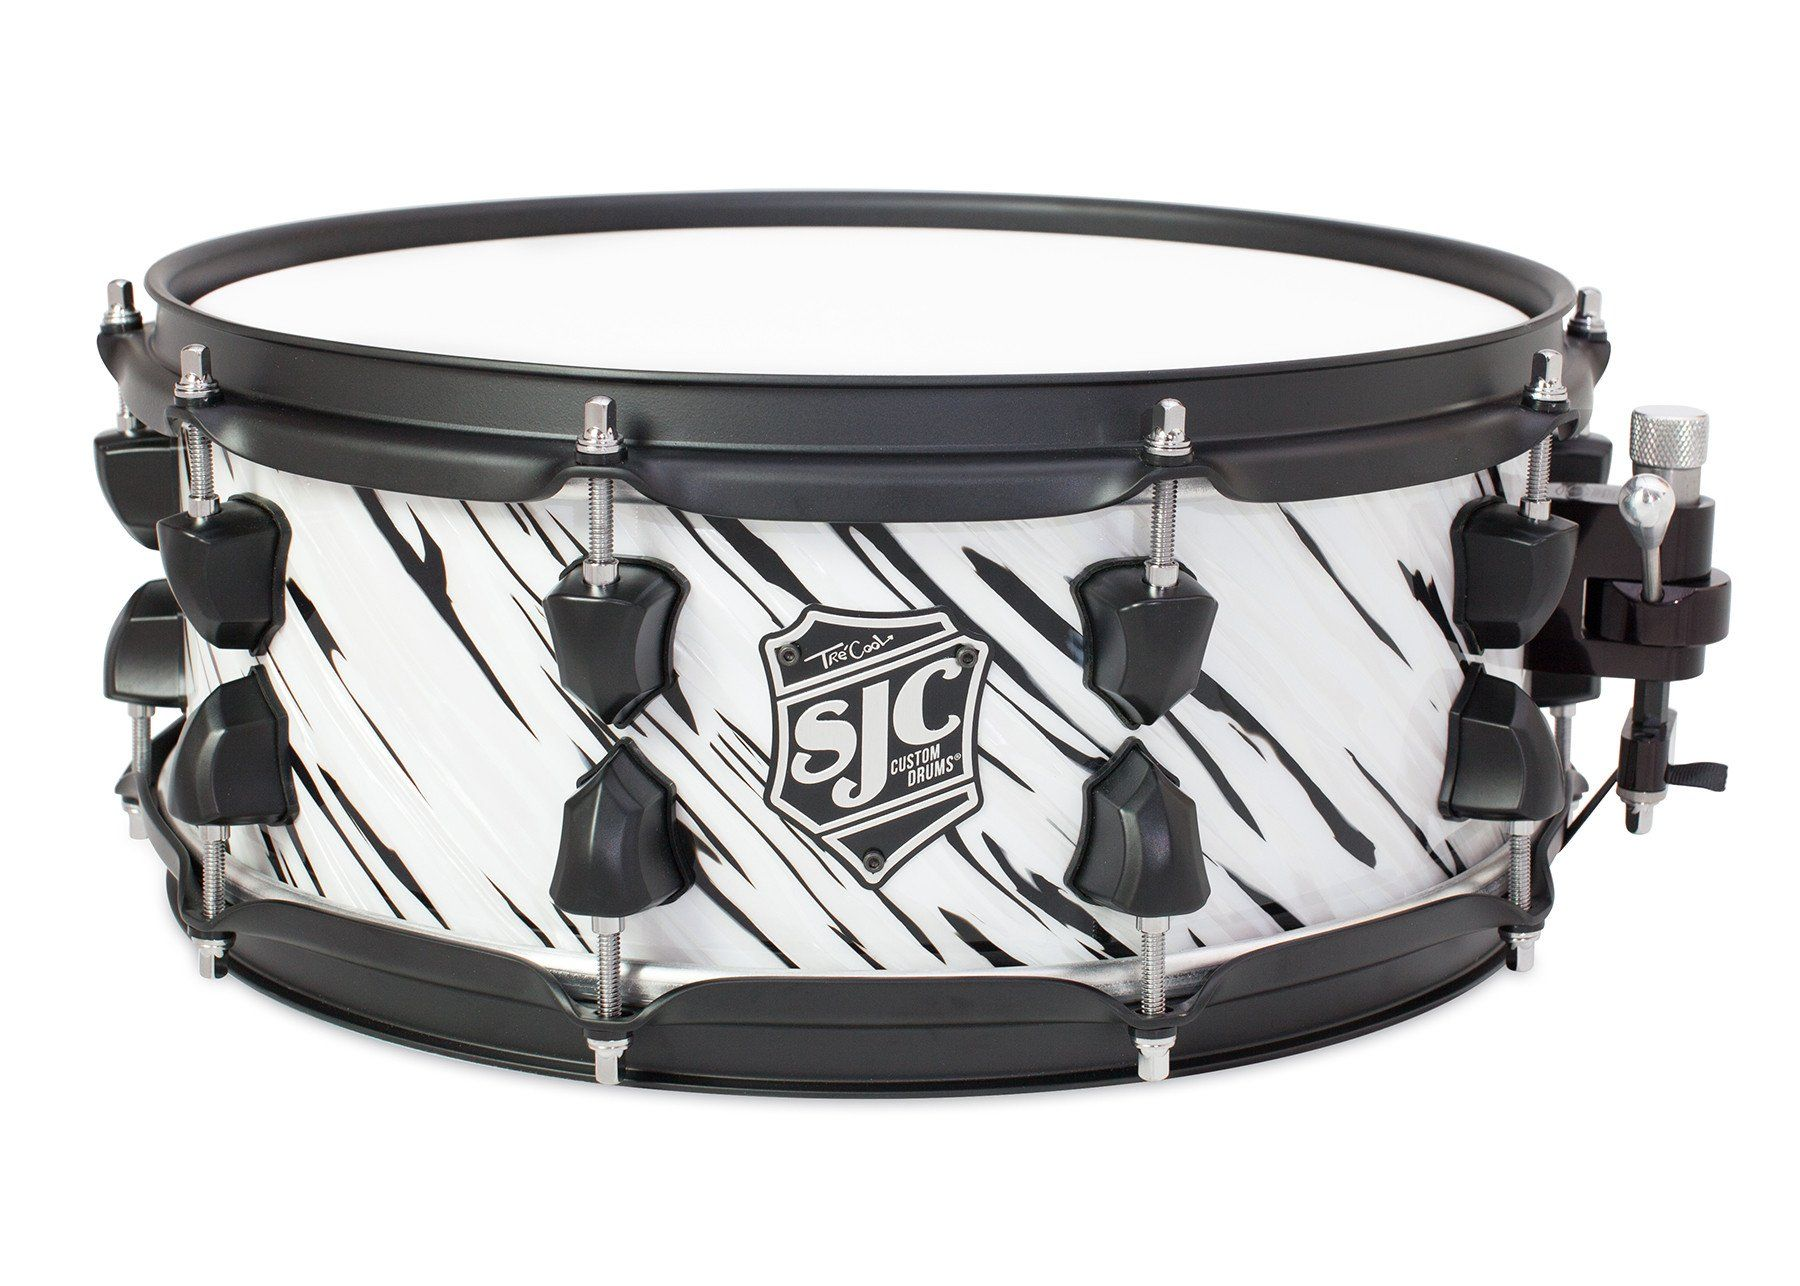 tr cool green day sjc custom drums. Black Bedroom Furniture Sets. Home Design Ideas